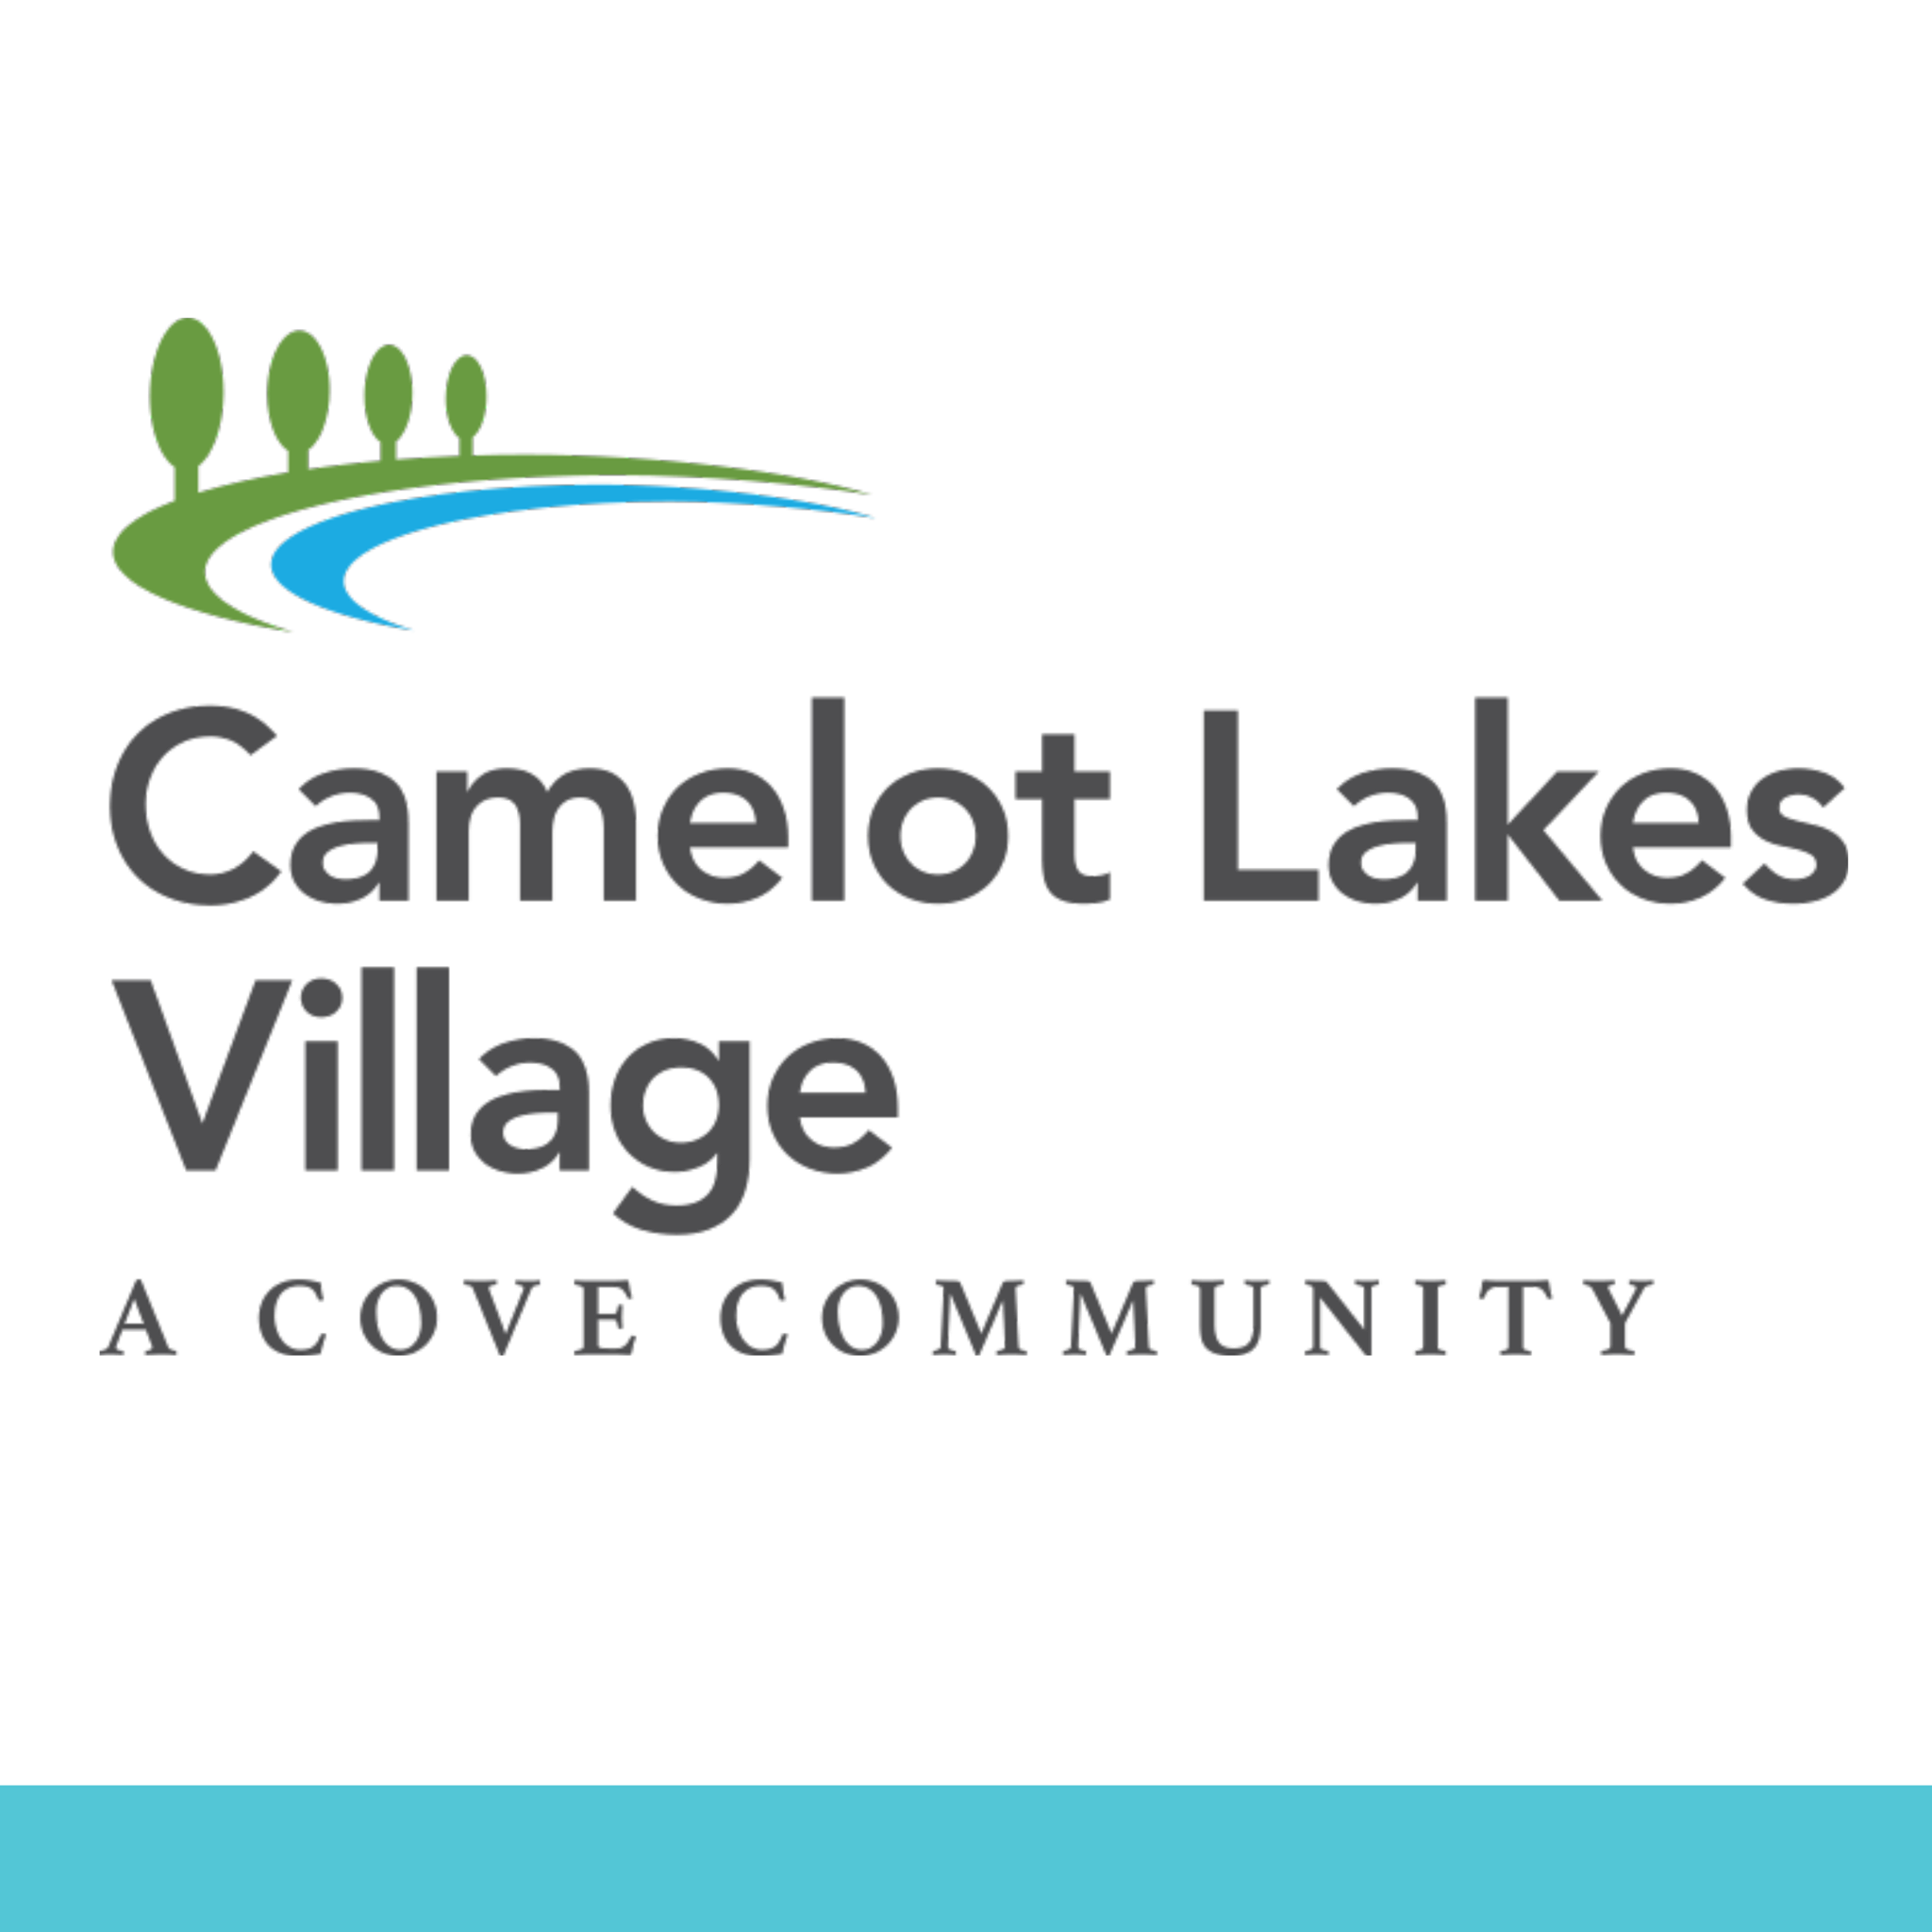 Camelot Lakes Village - Other - Siesta Key - Sarasota